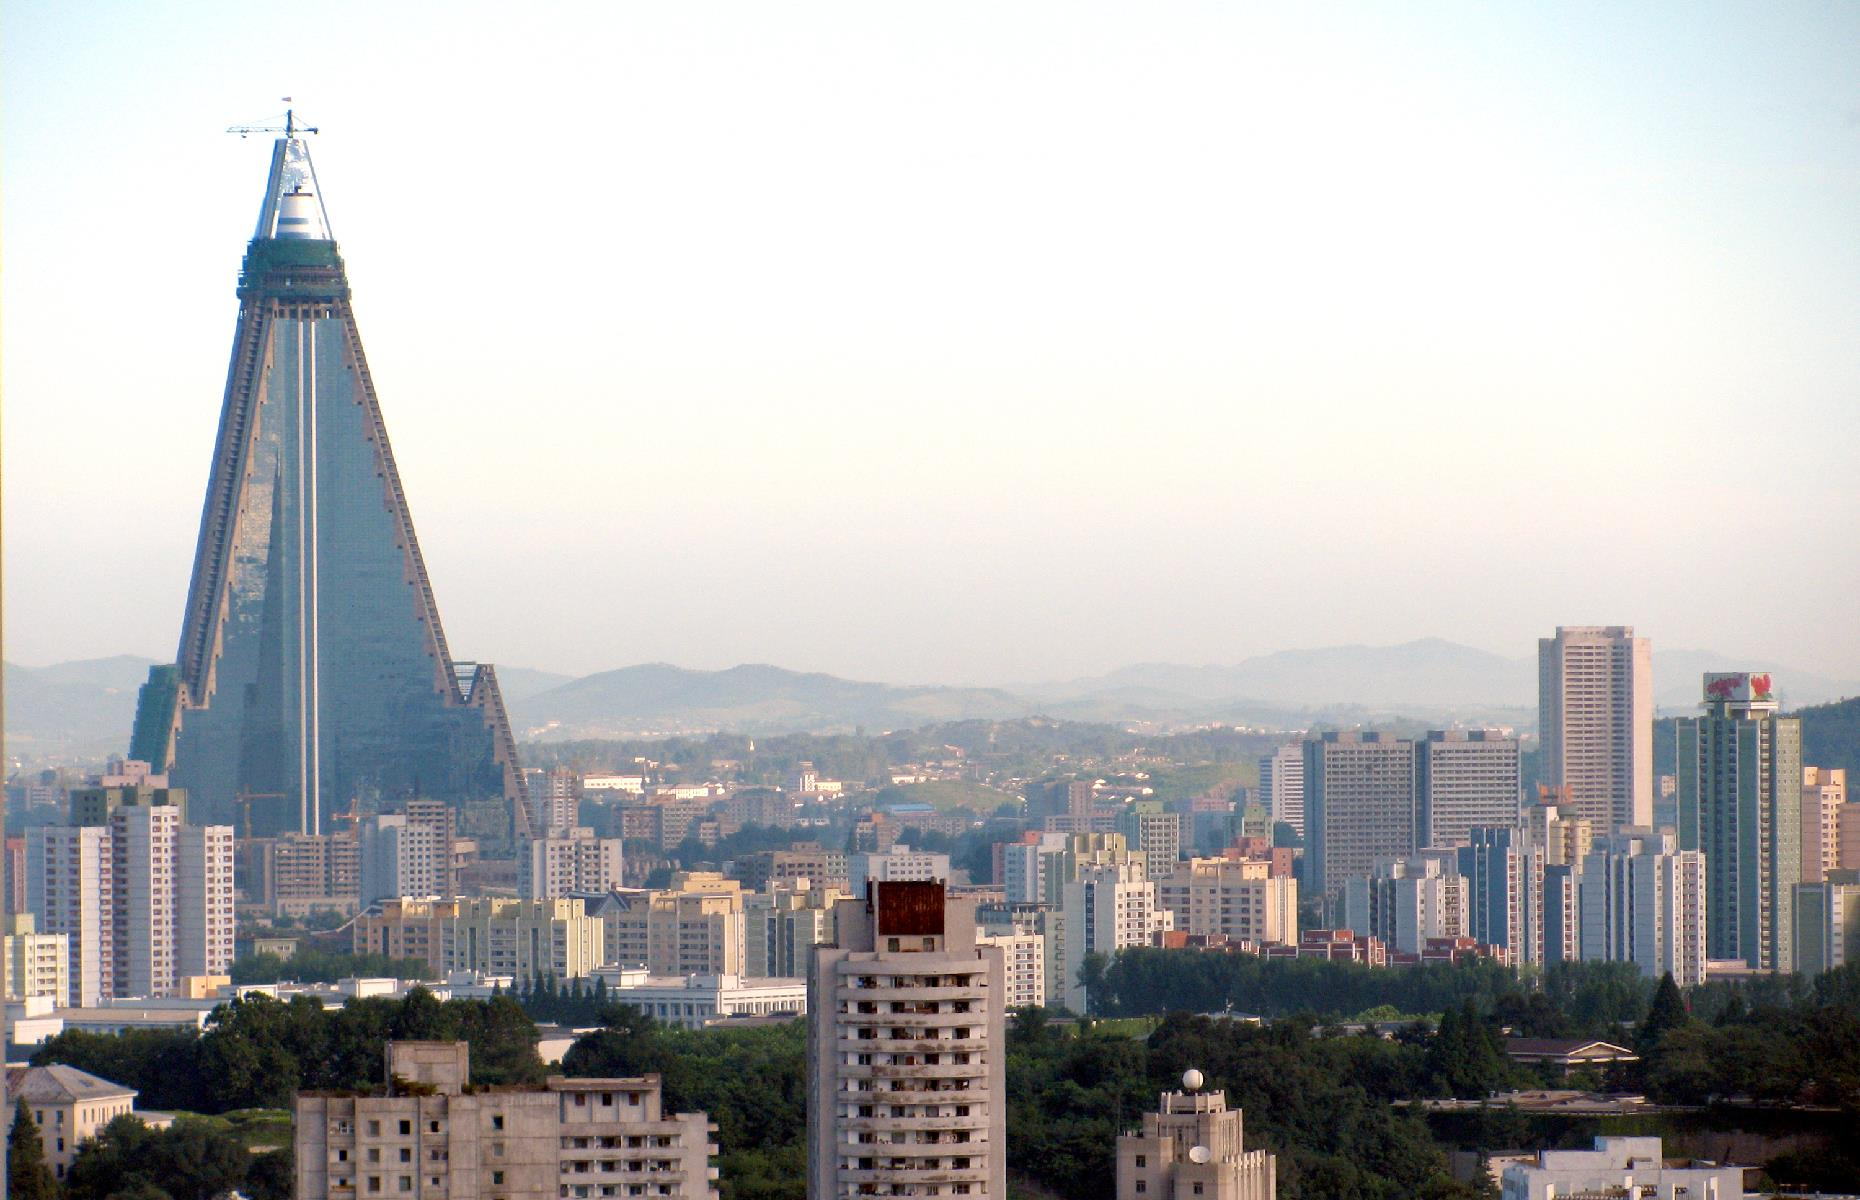 "Slide 8 of 31: Standing head and shoulders above the rest of Pyongyang's skyscrapers, this gigantic pyramidal structure has been a work in progress for decades. Ground first broke in 1987 and the building was intended to be a 3,000-room hotel with bells and whistles such as revolving restaurants. However, its construction has been plagued with issues – so much so that the landmark has been nicknamed the ""Hotel of Doom""."